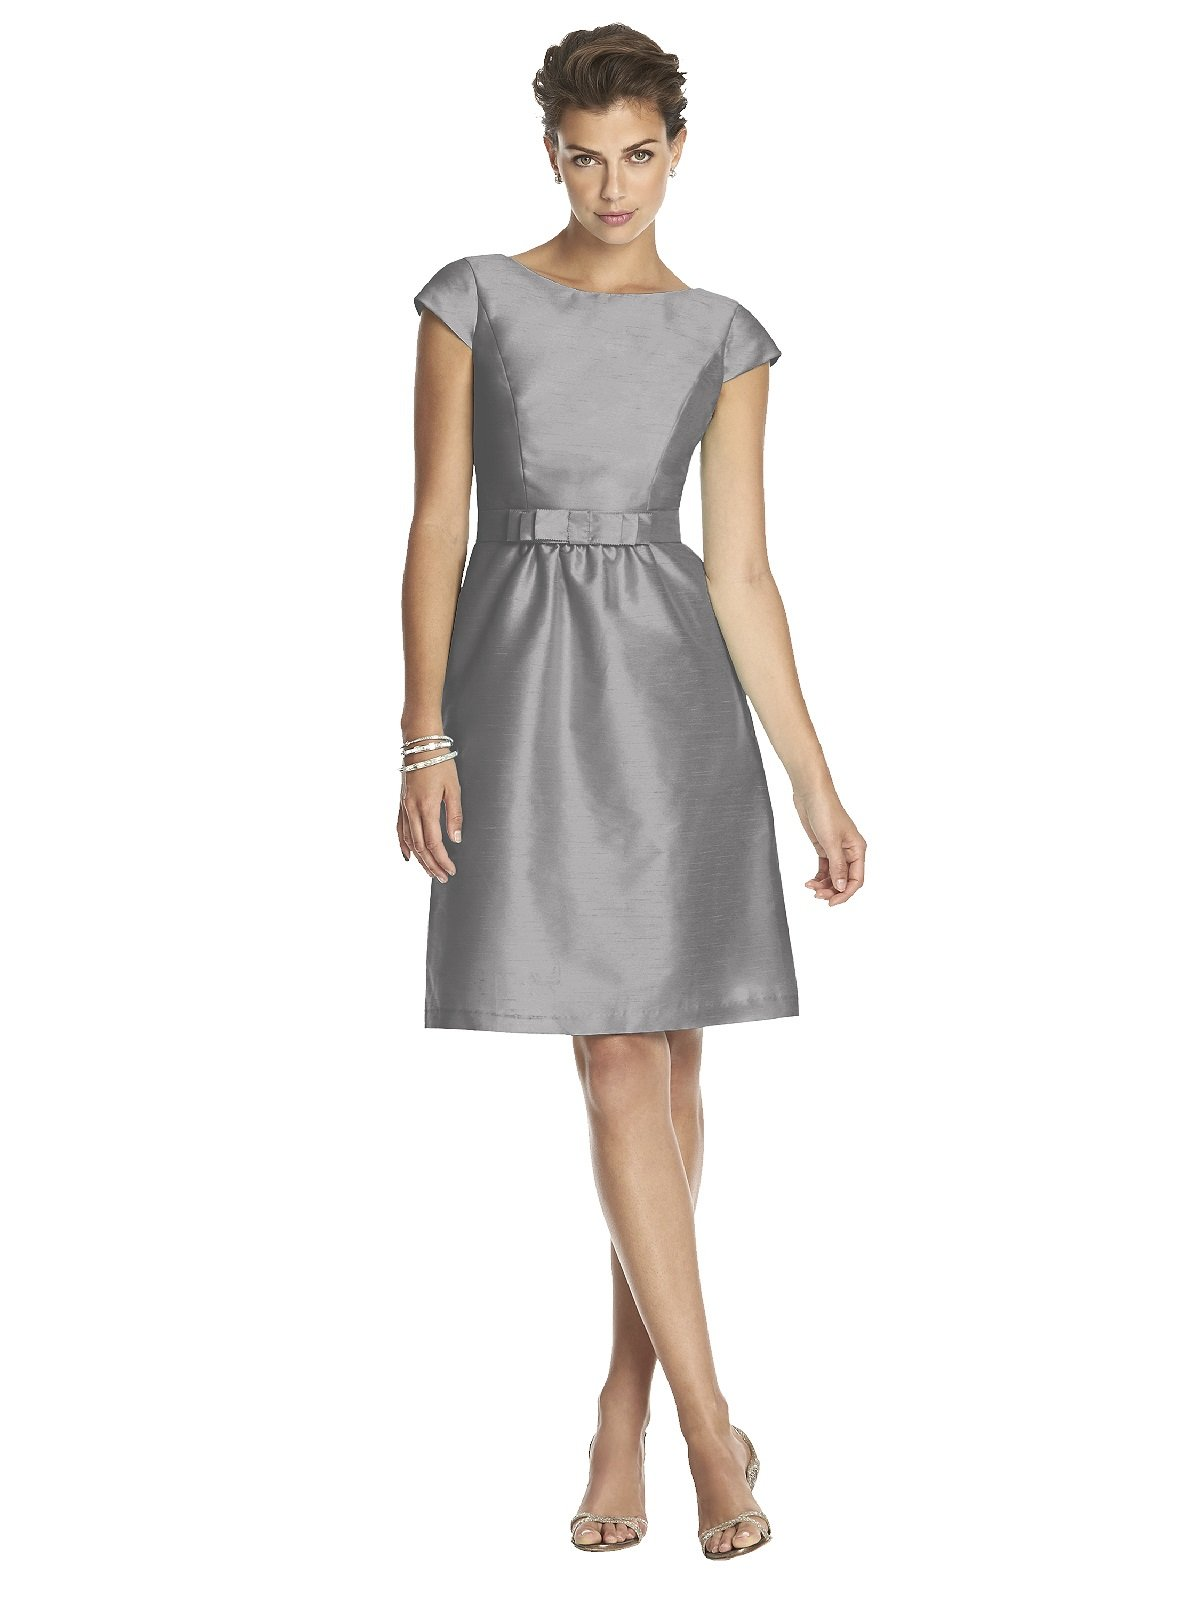 Women's Cocktail Length Dupioni Bateau Neck Dress with Bow by Alfred Sung - Quarry - Size 2